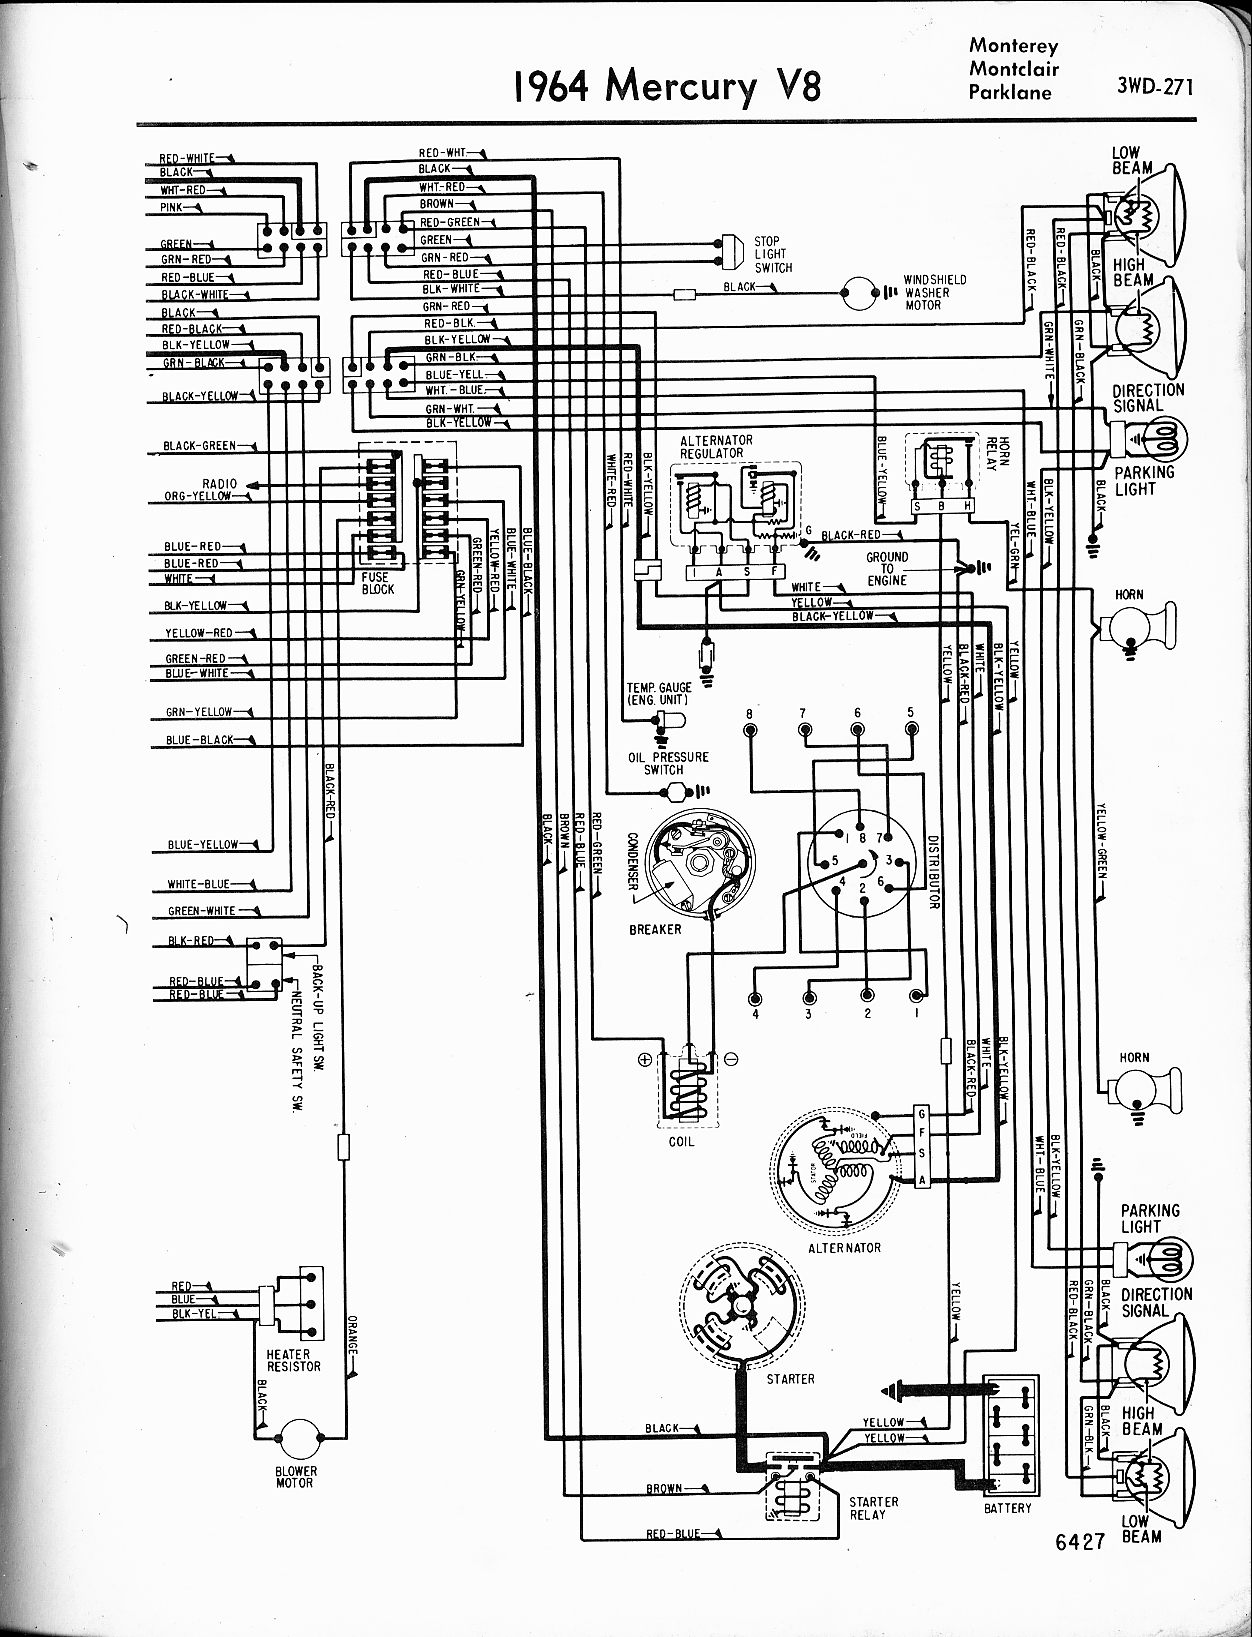 MWire5765 271 mercury wiring diagrams the old car manual project 1965 thunderbird alternator wiring diagram at soozxer.org